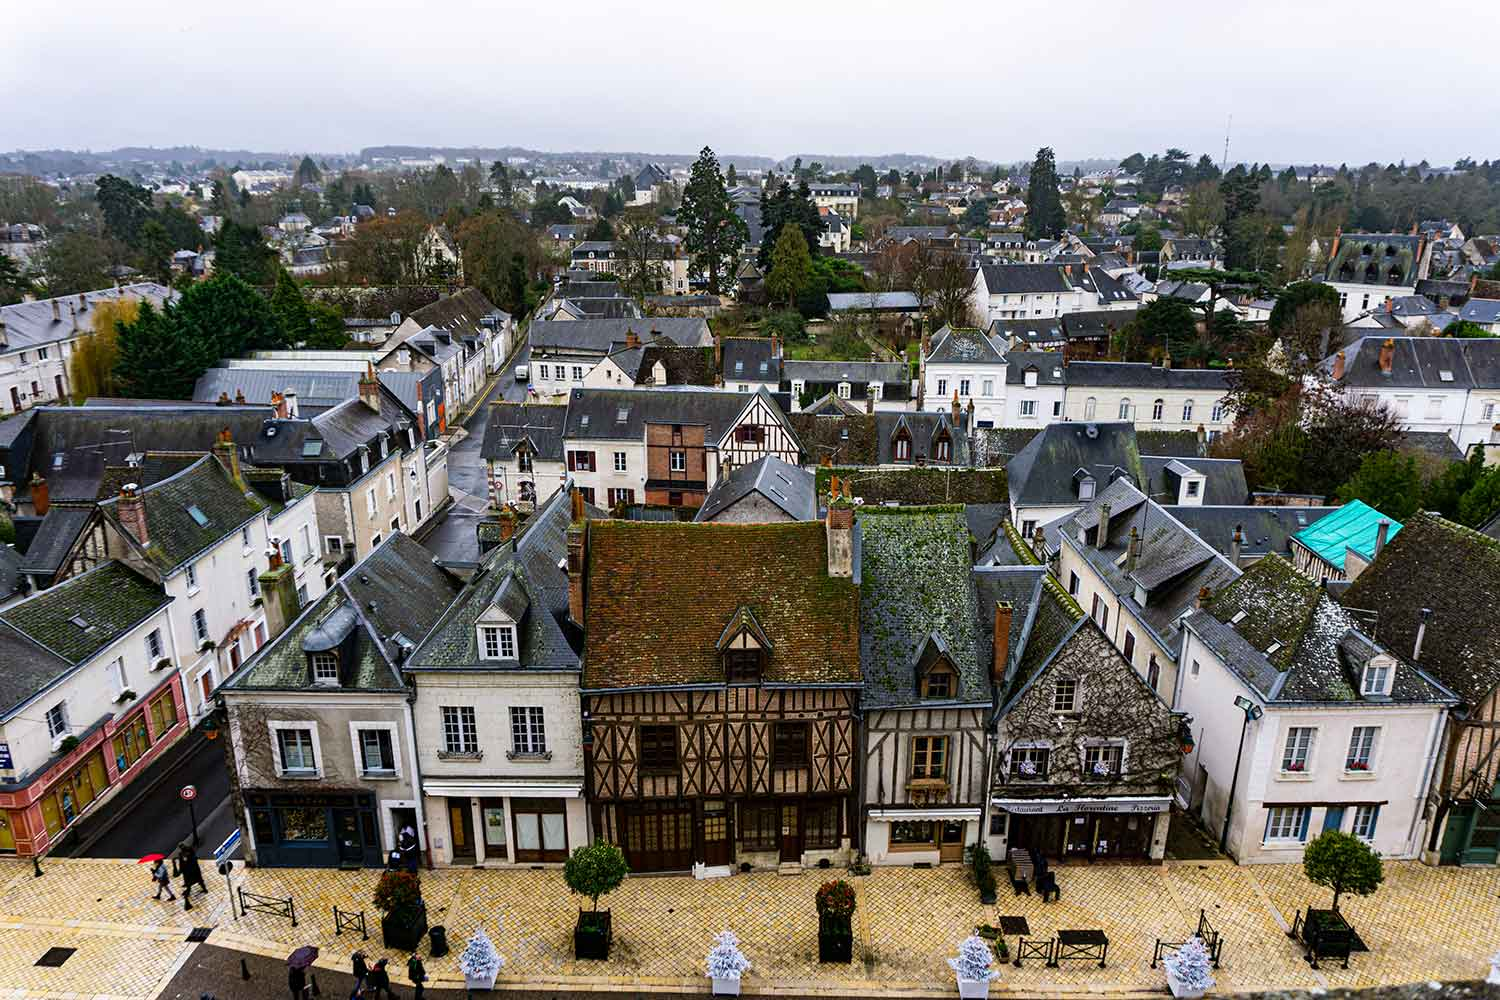 A view of the streets of Amboise from the Royal Castle of Amboise.